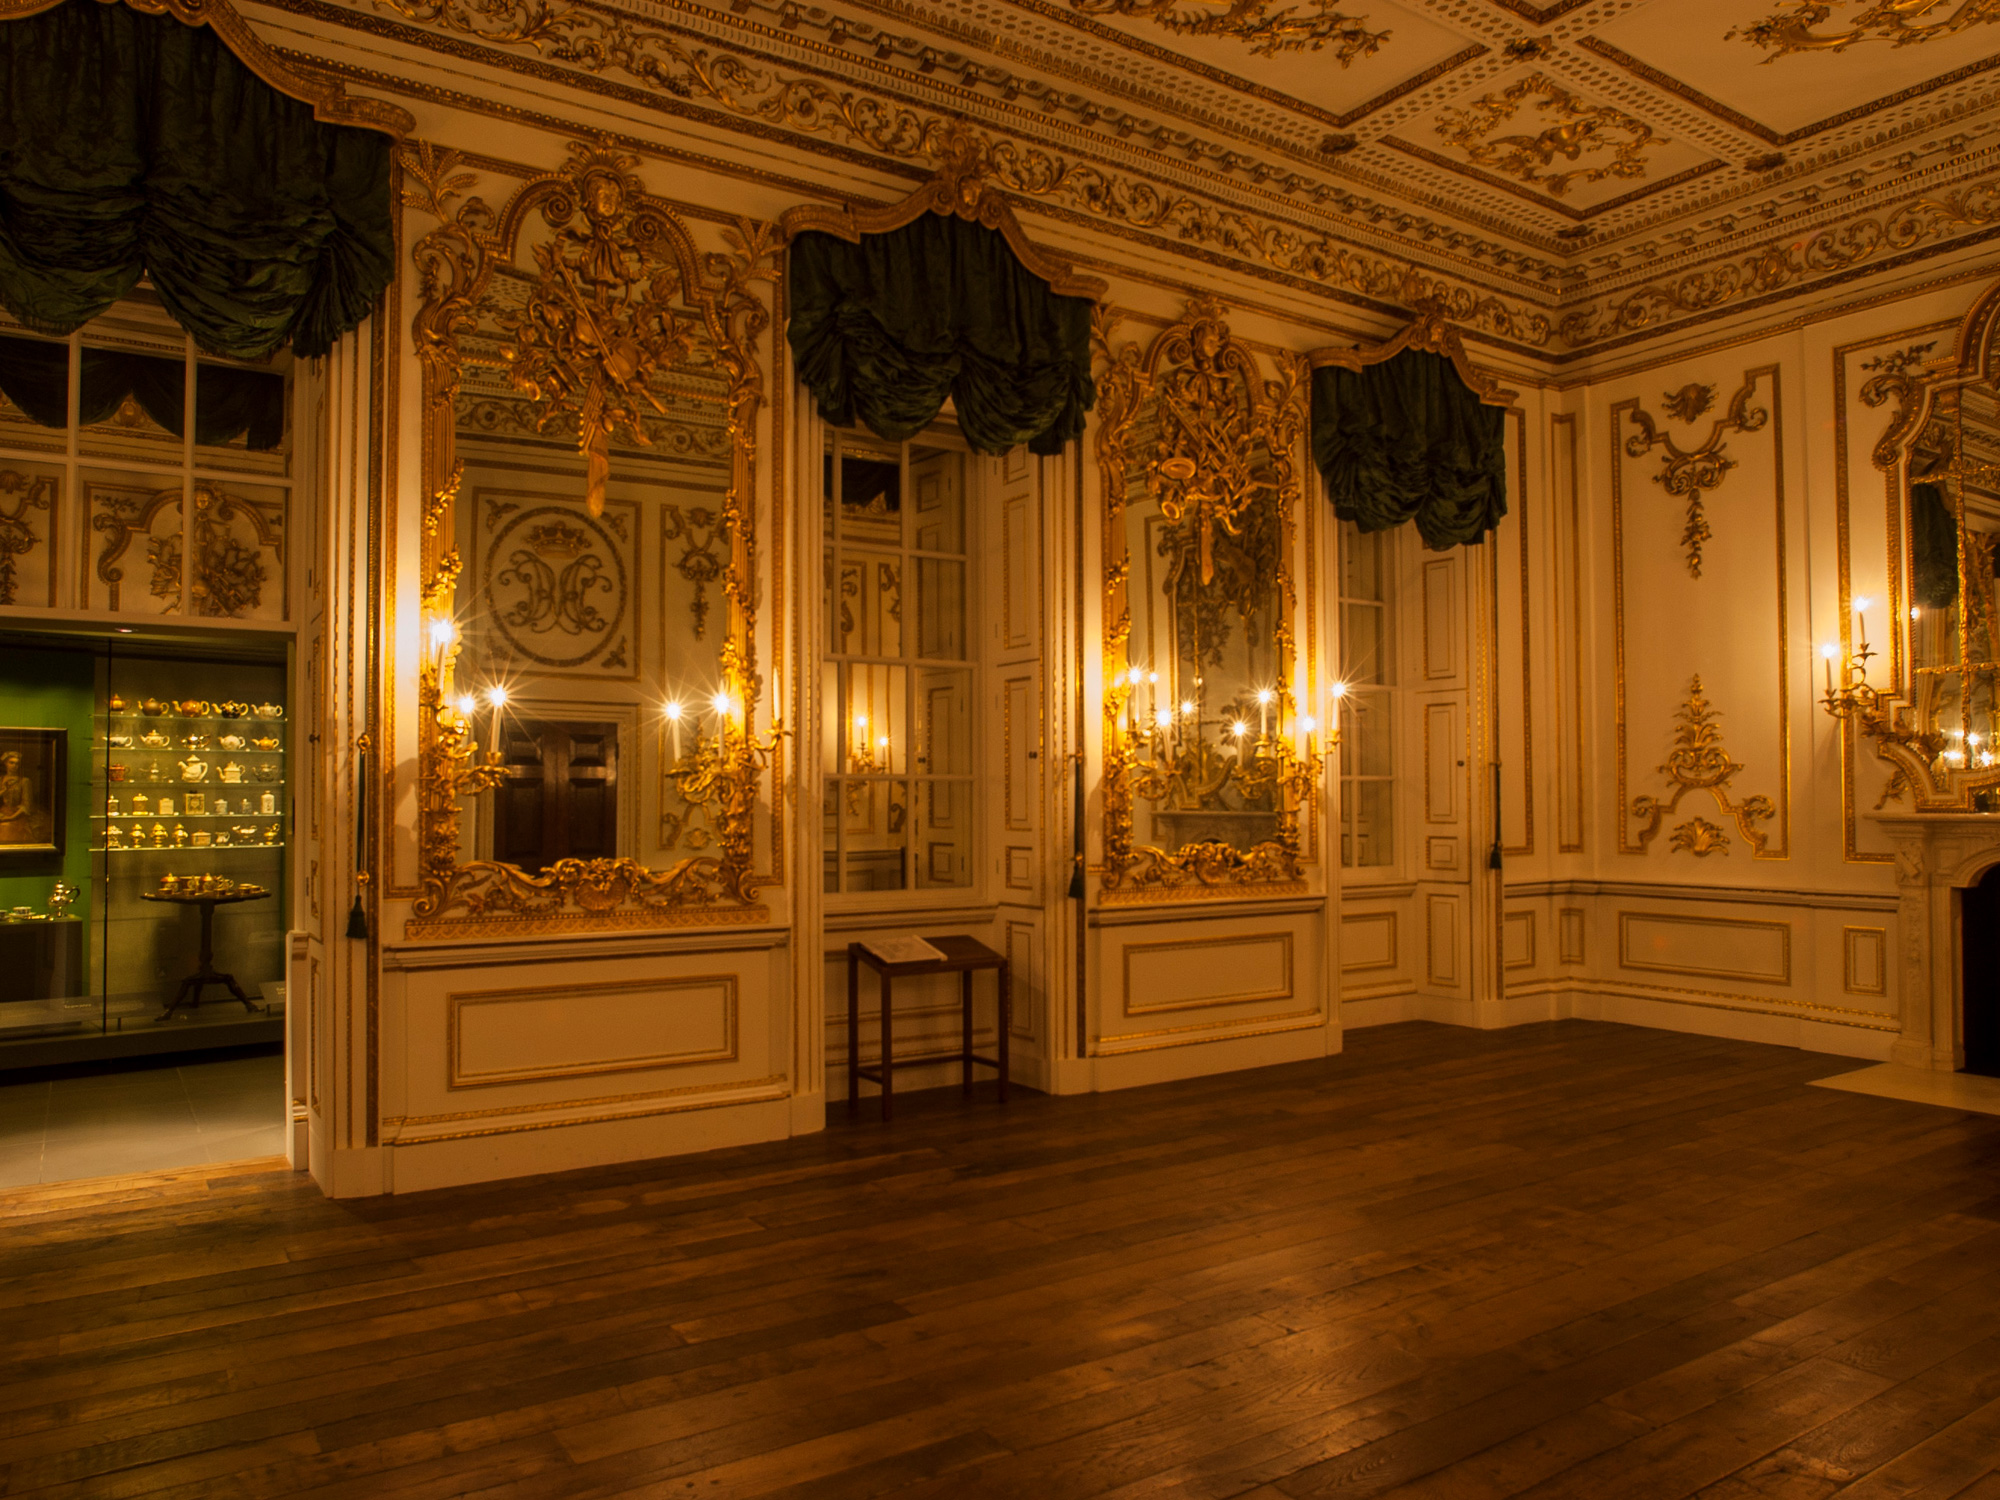 Norfolk House Music Room. British Galleries, Victoria & Albert Museum